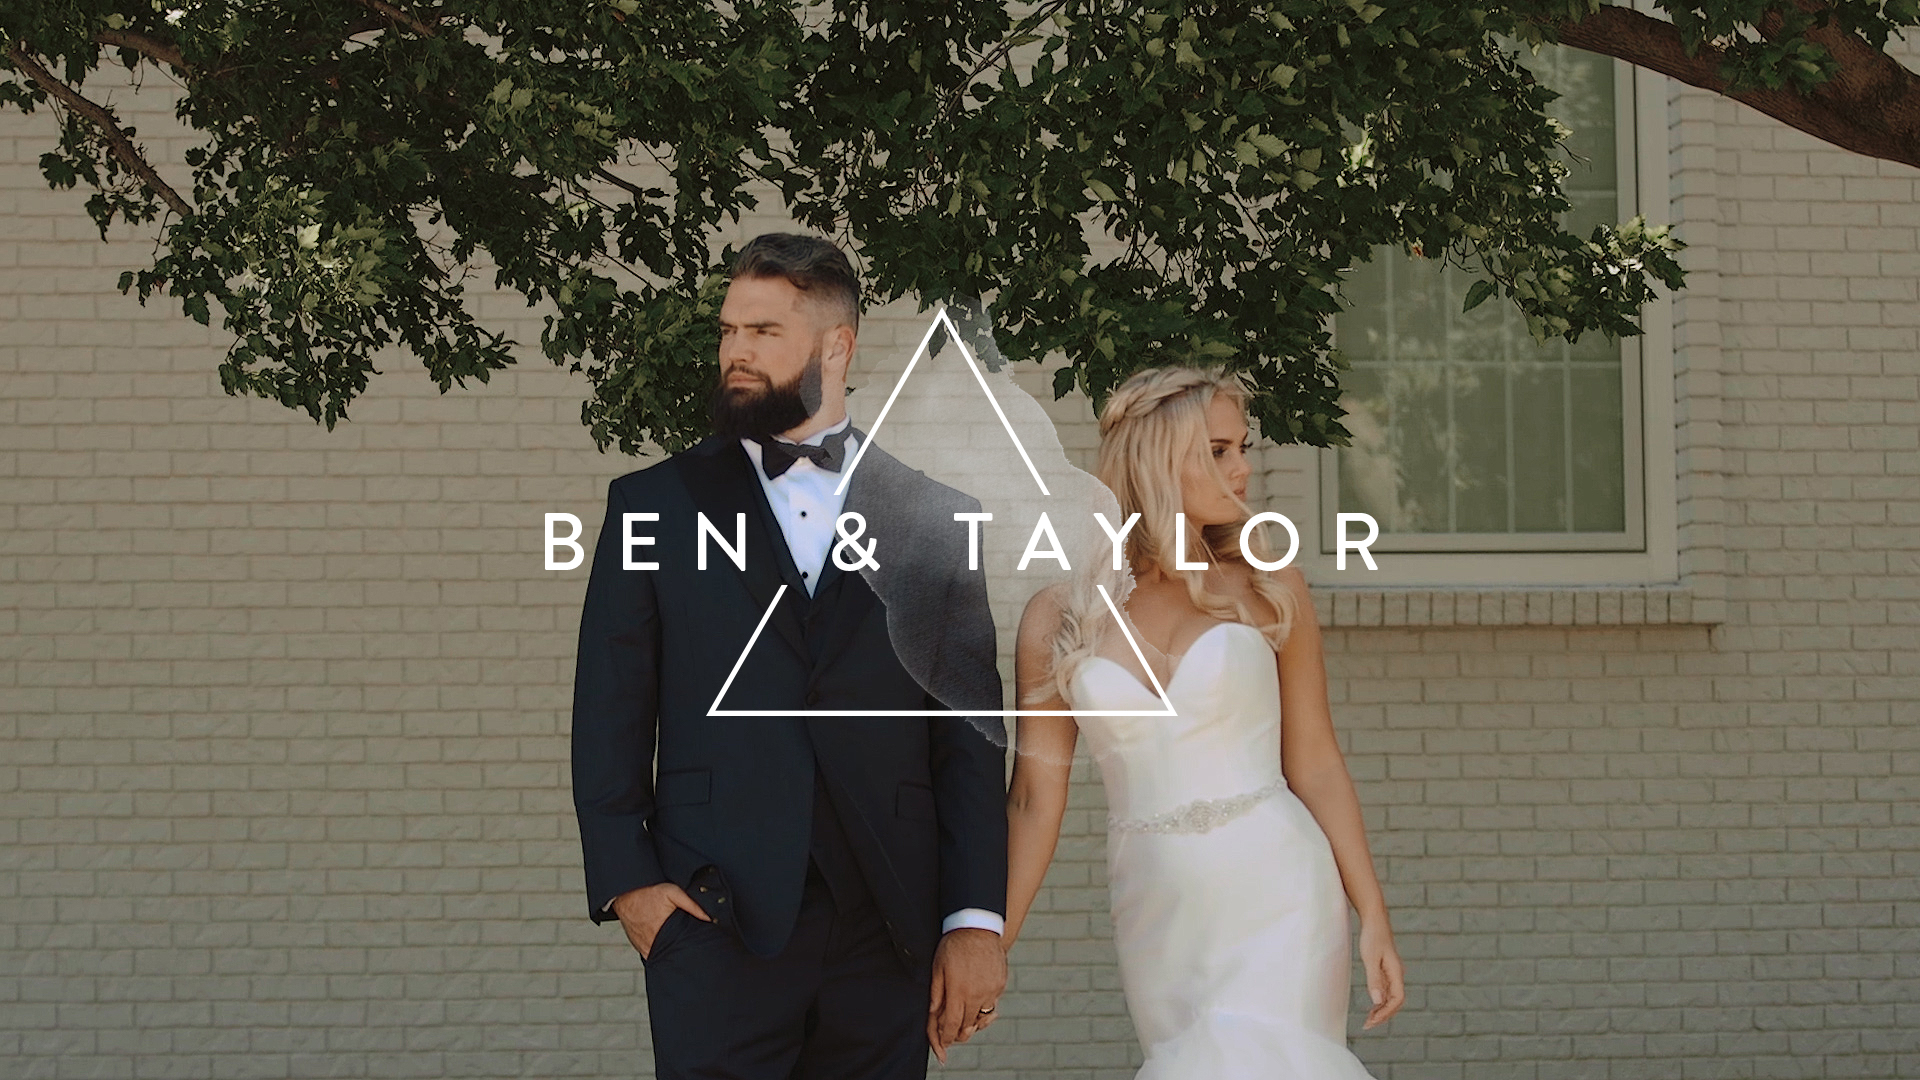 Ben + Taylor | Wichita, Kansas | Distillery 244 Old Town, Wichita